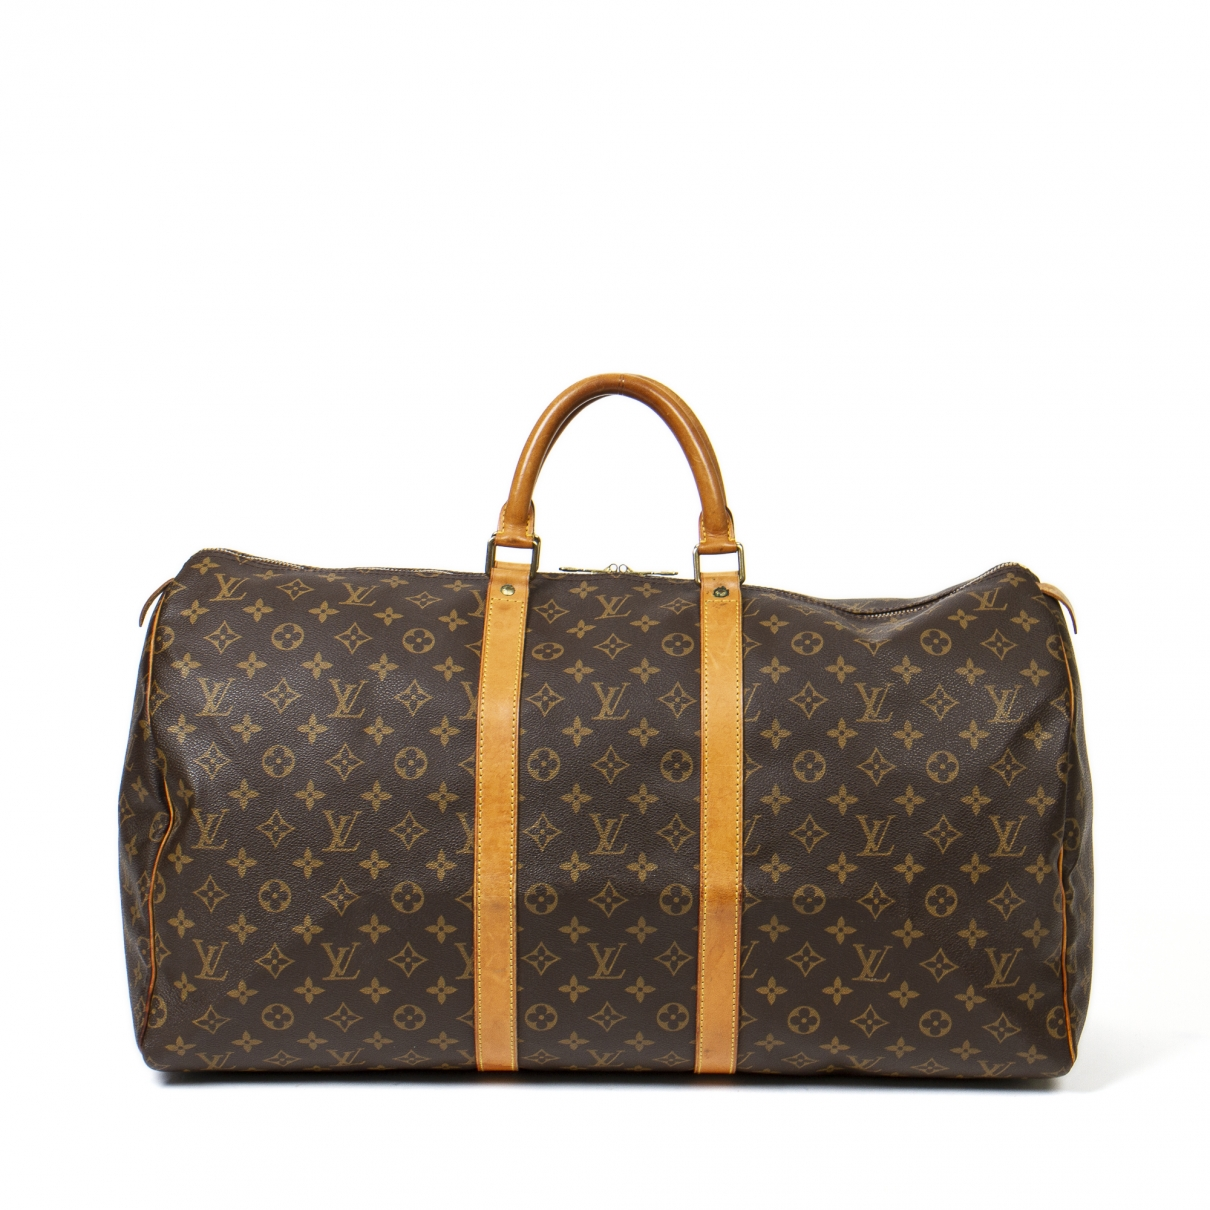 Louis Vuitton Keepall Brown Leather Travel bag for Women \N